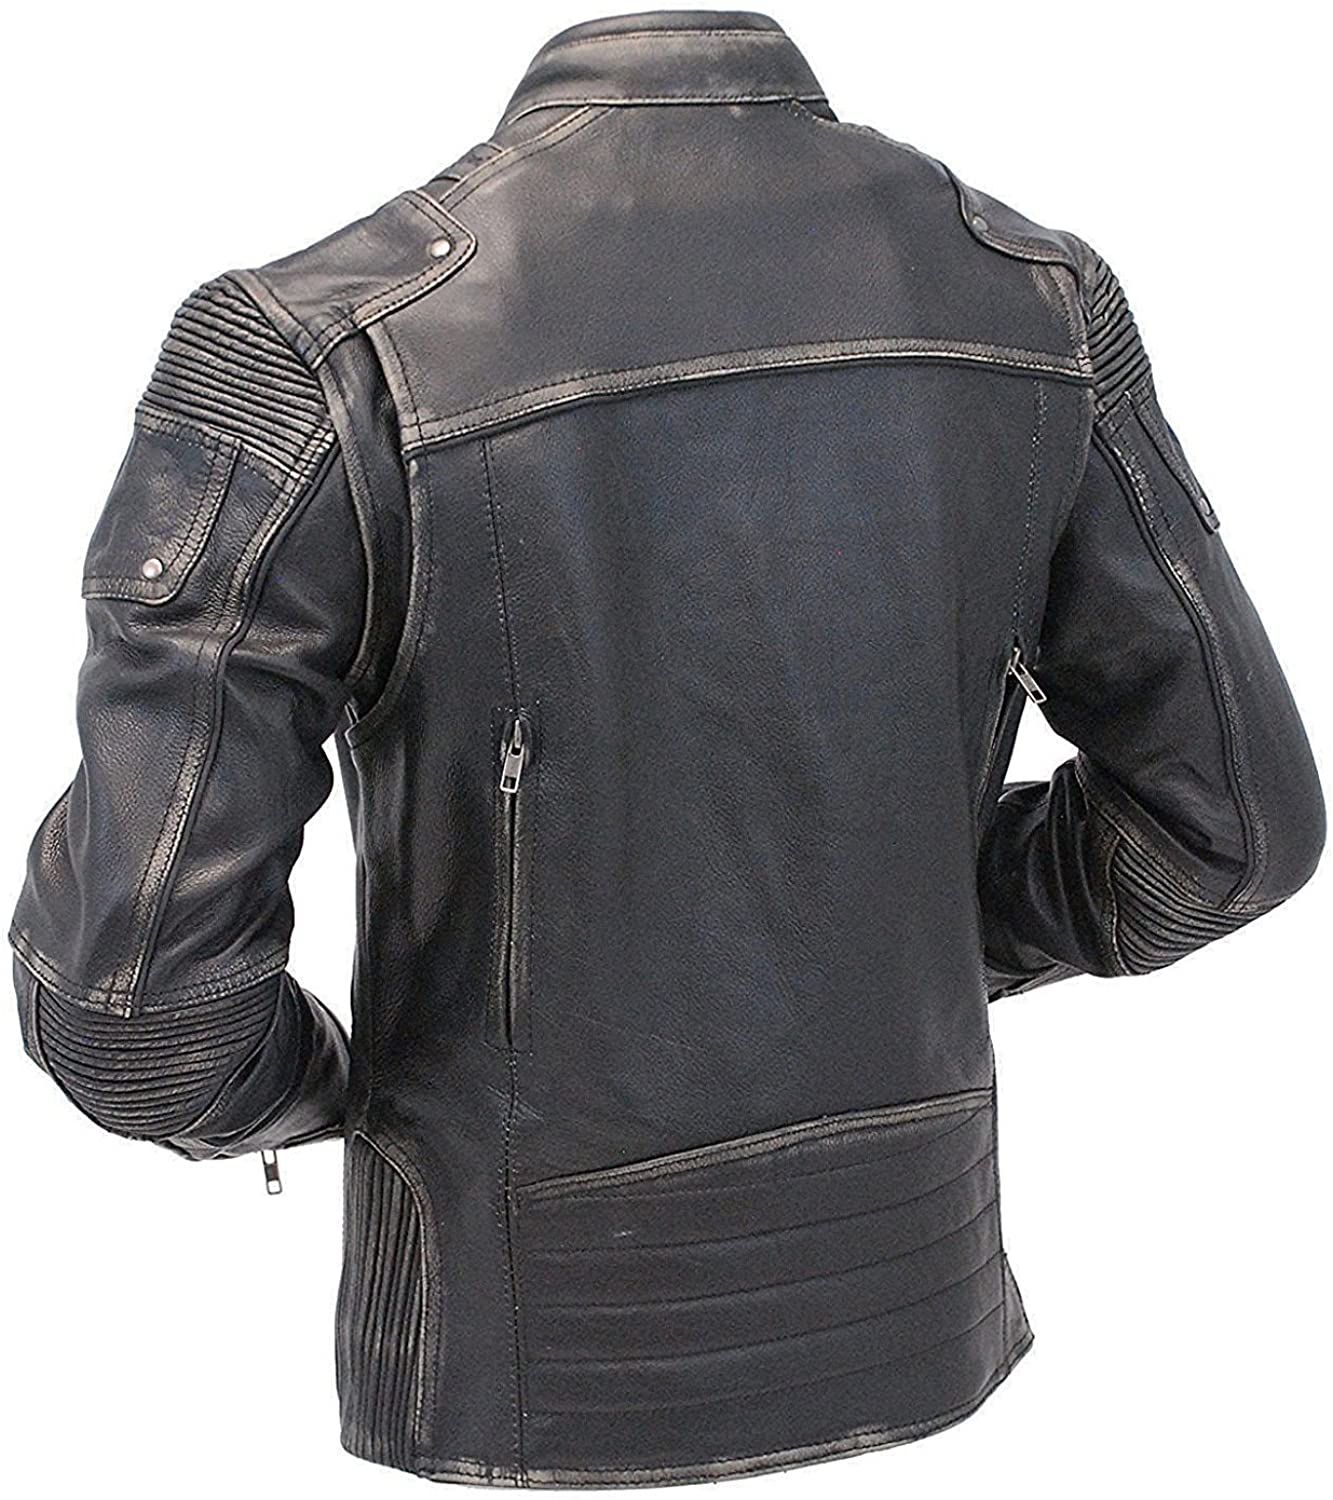 Mens Leather Jacket Mens Union Jack Leather Jacket Cafe Racer Black Distressed Leather Jacket